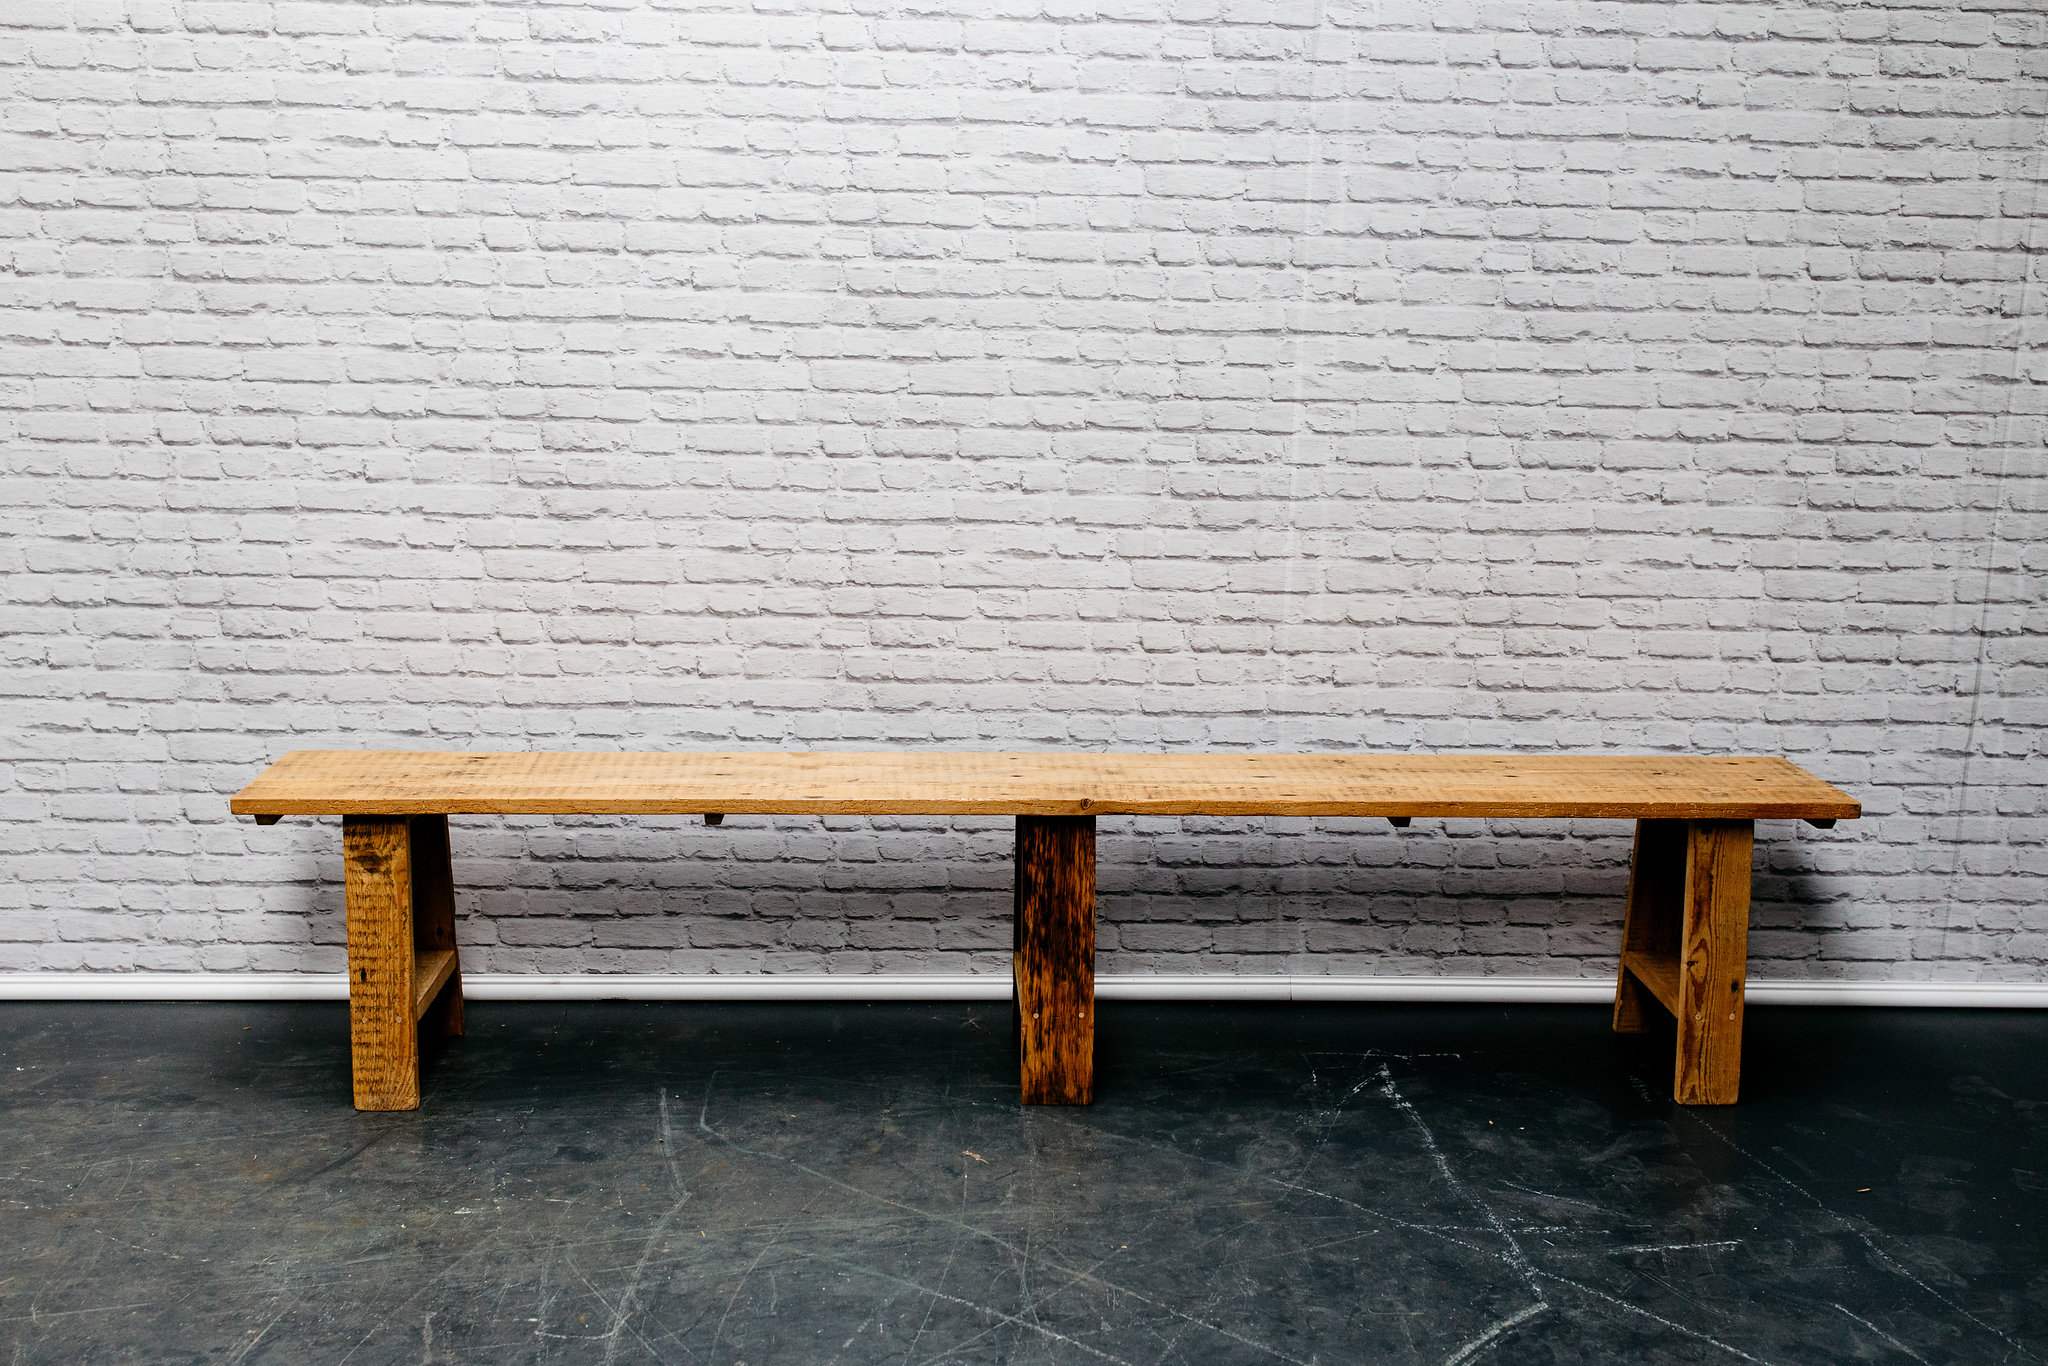 8ft Reclaimed Wood Bench